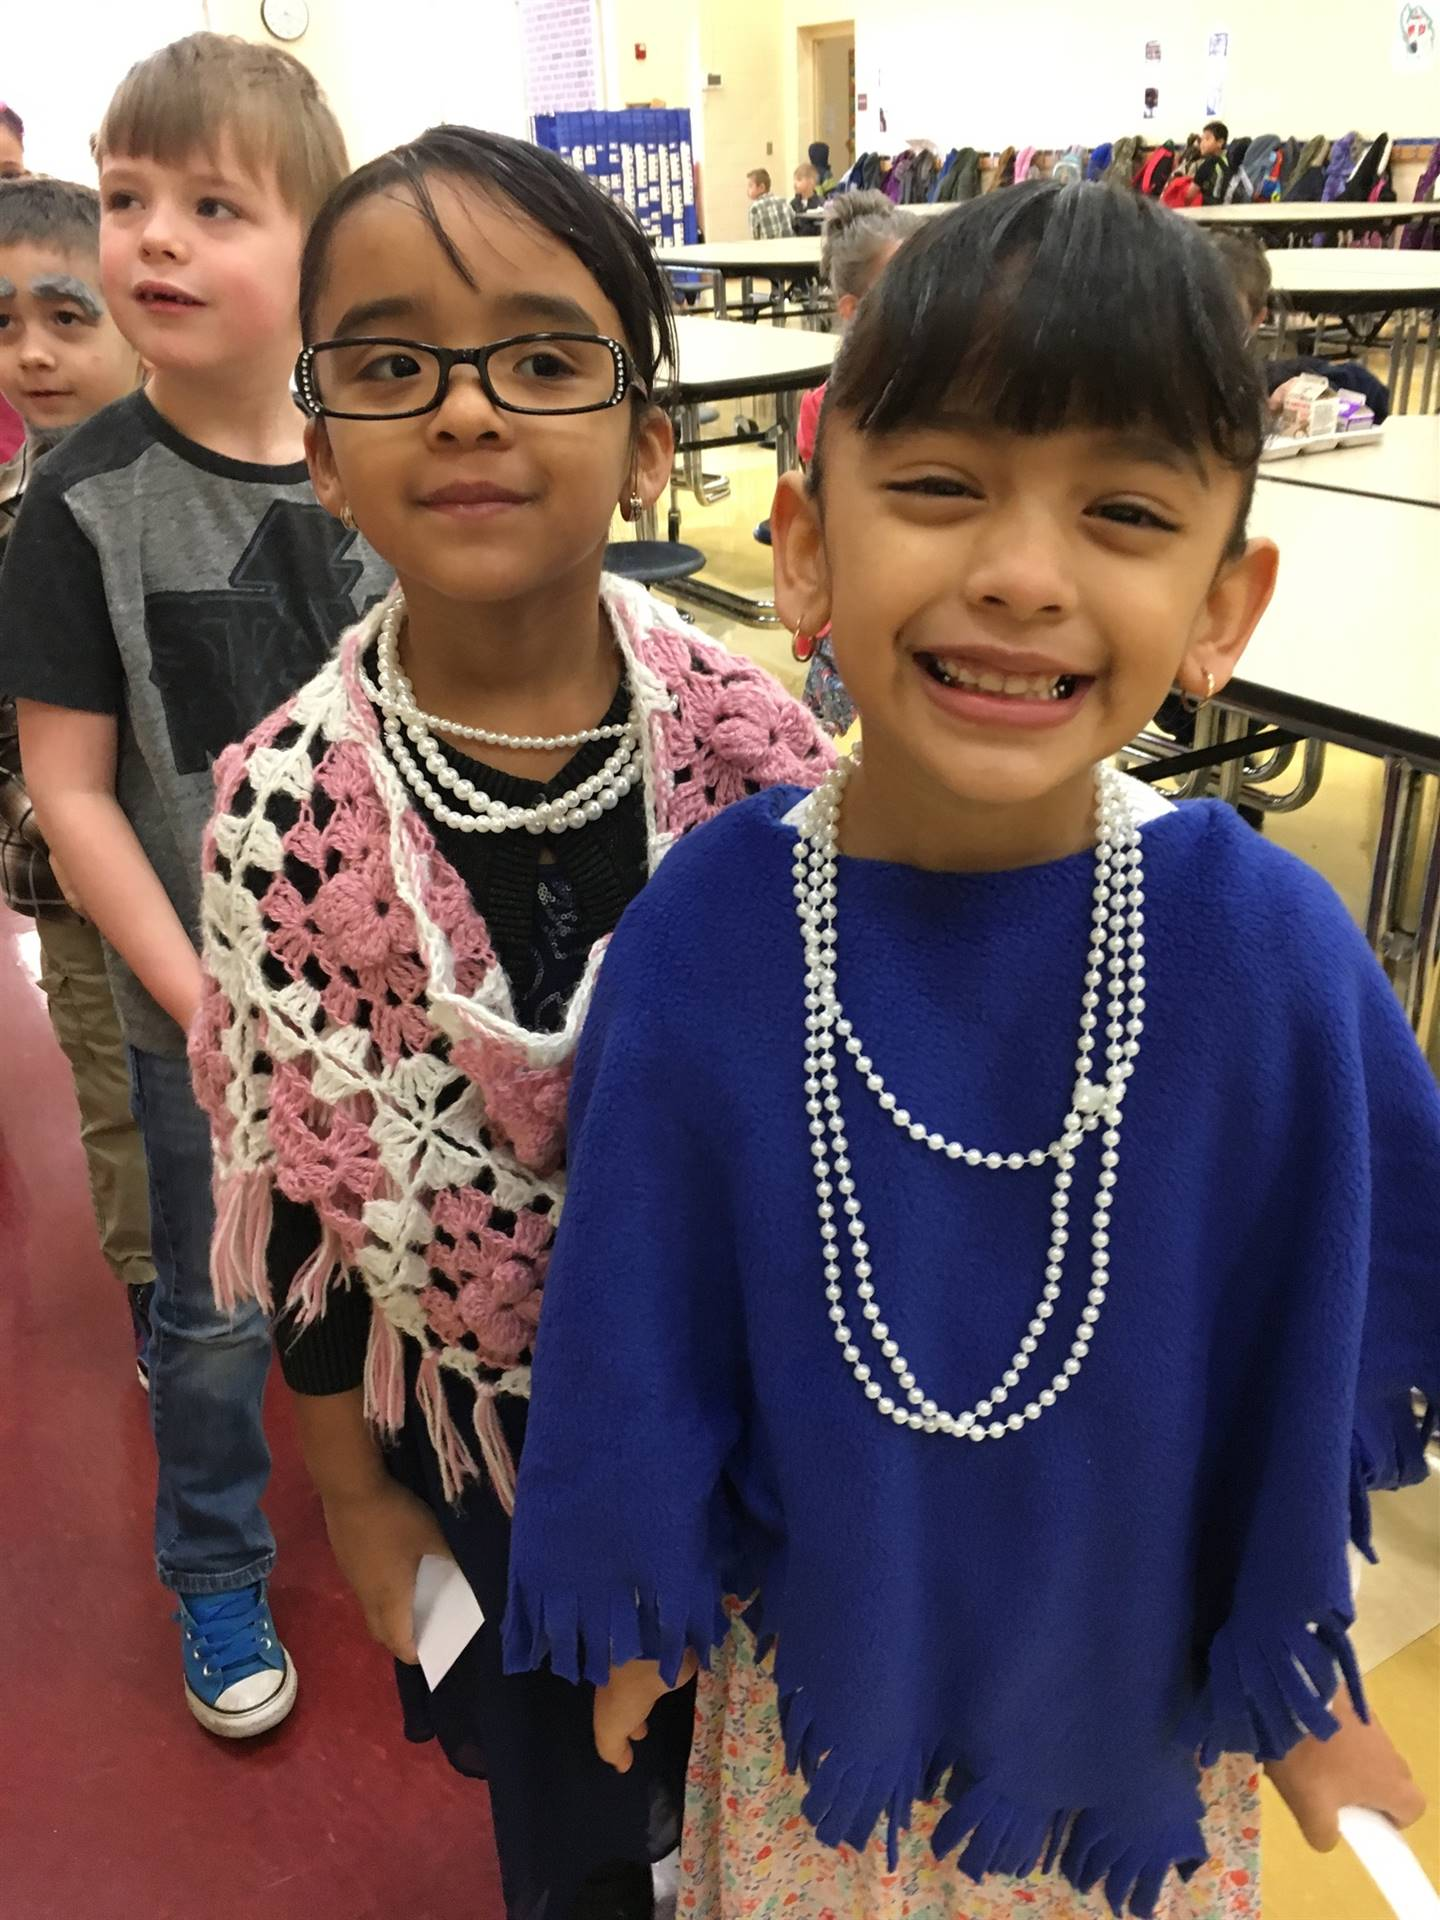 100th Day of School - We are Dressed like we are 100 years old!